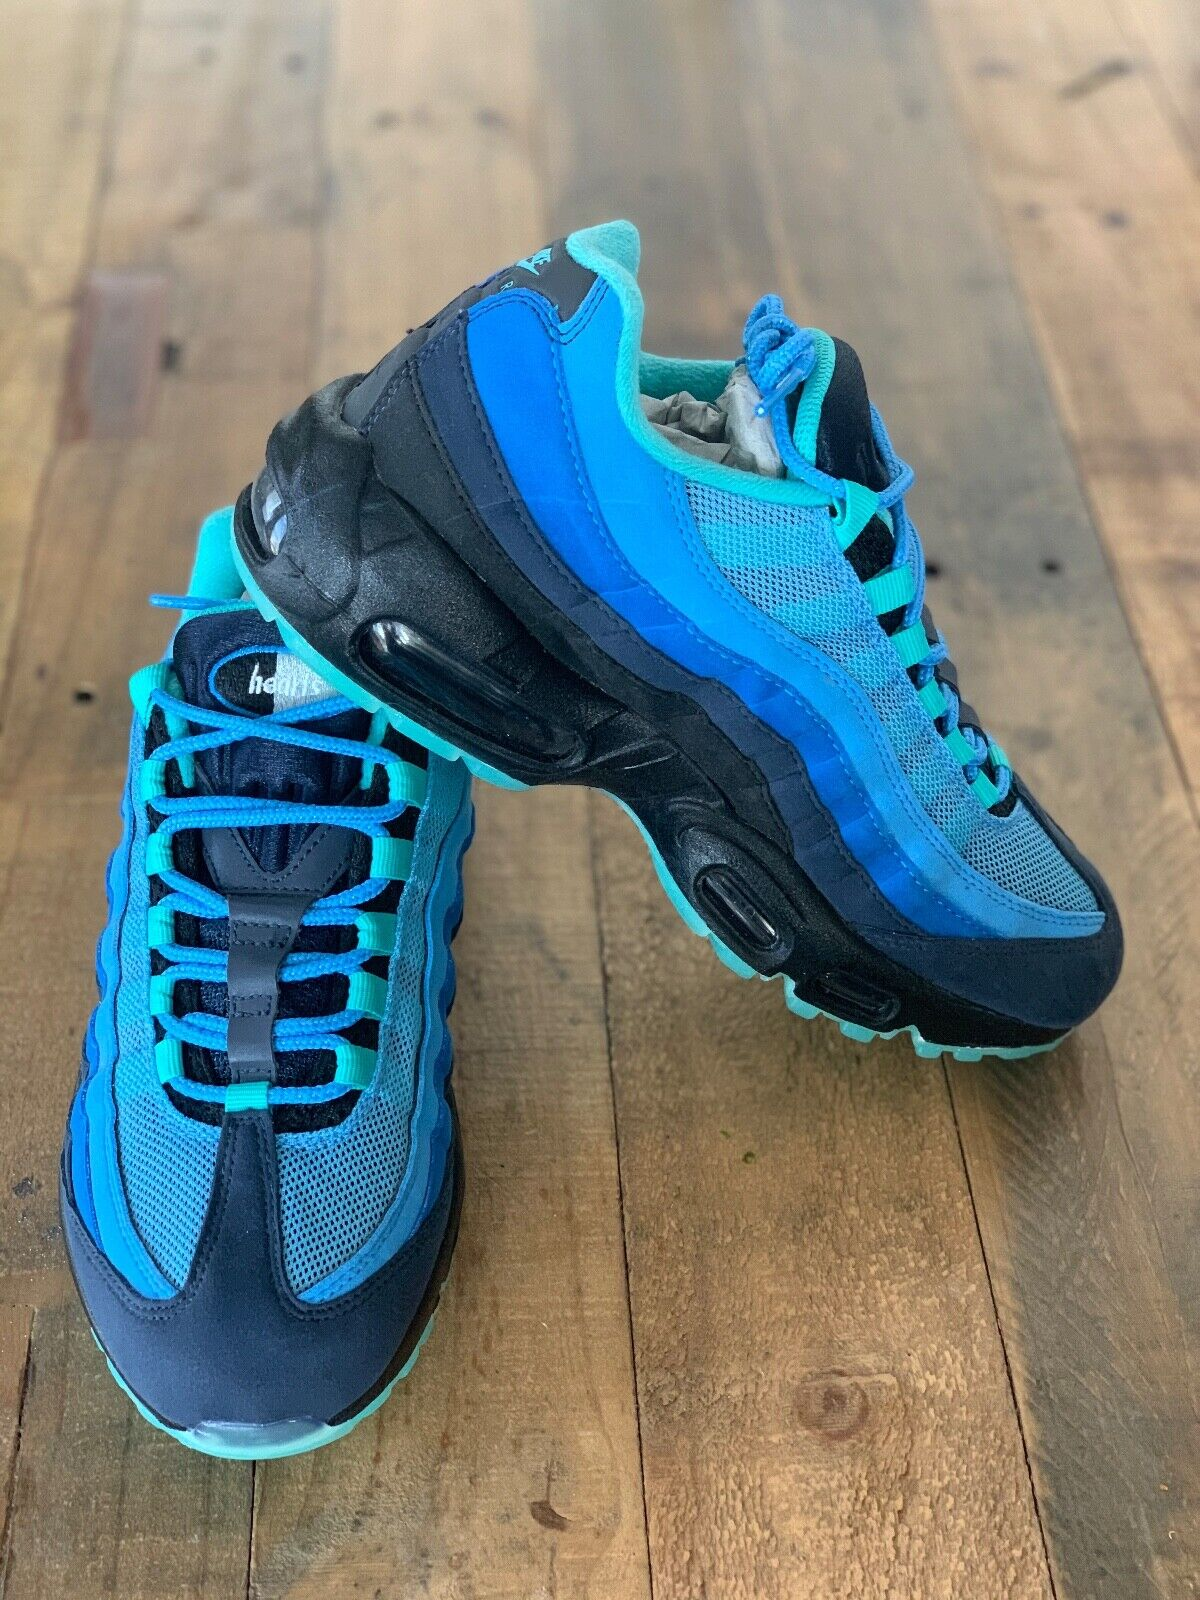 Nike Air Max 95 Women's Sneakers Size 8 Brand New